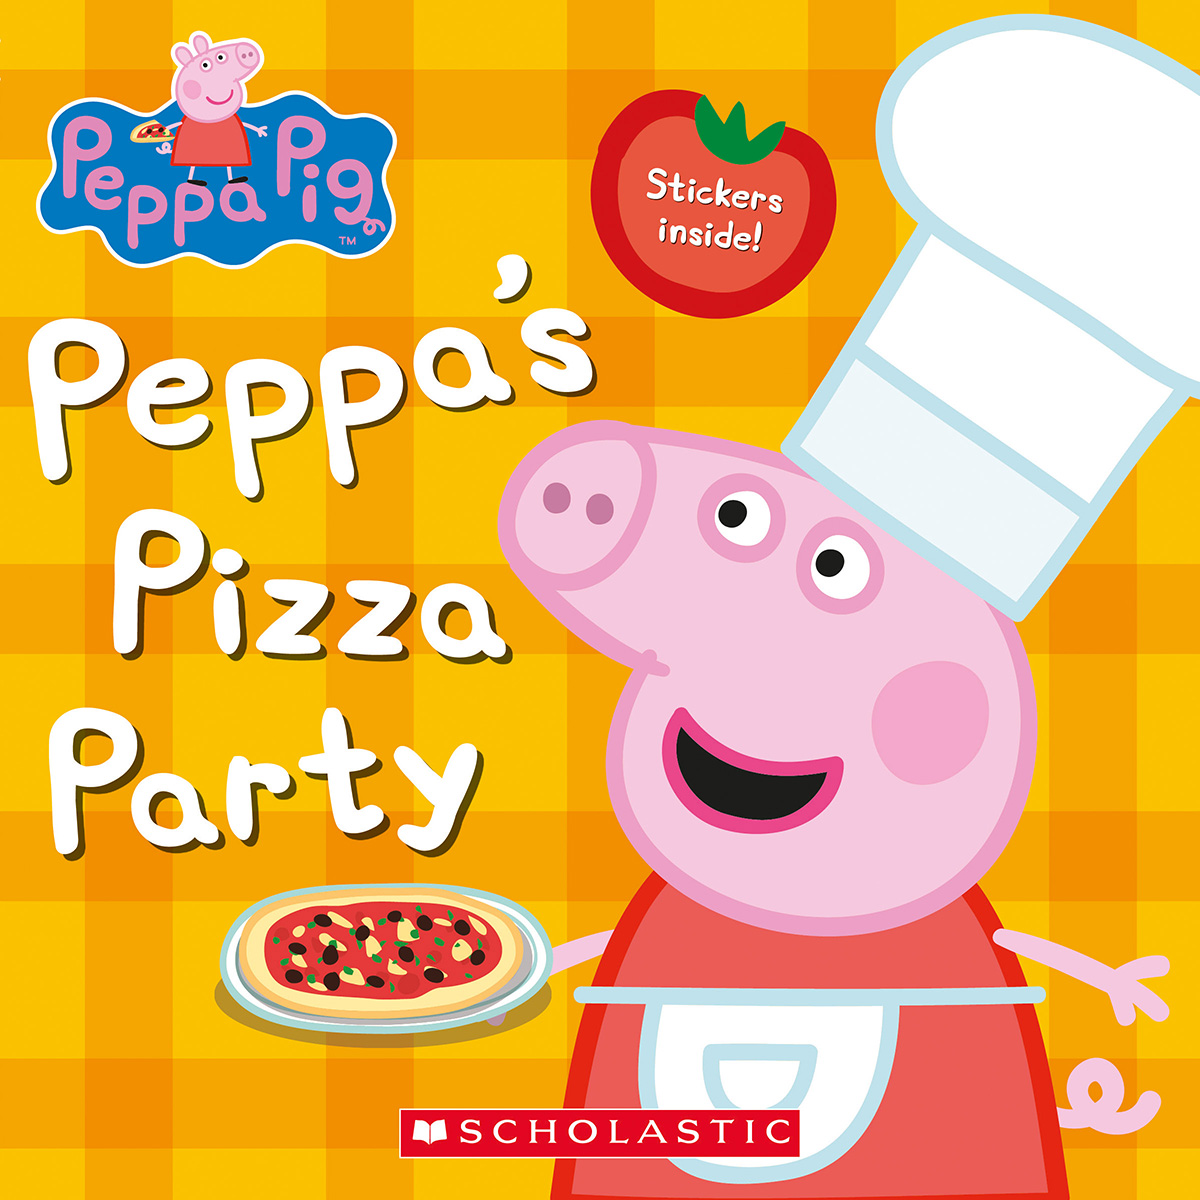 Peppa Pig: Peppa's Pizza Party